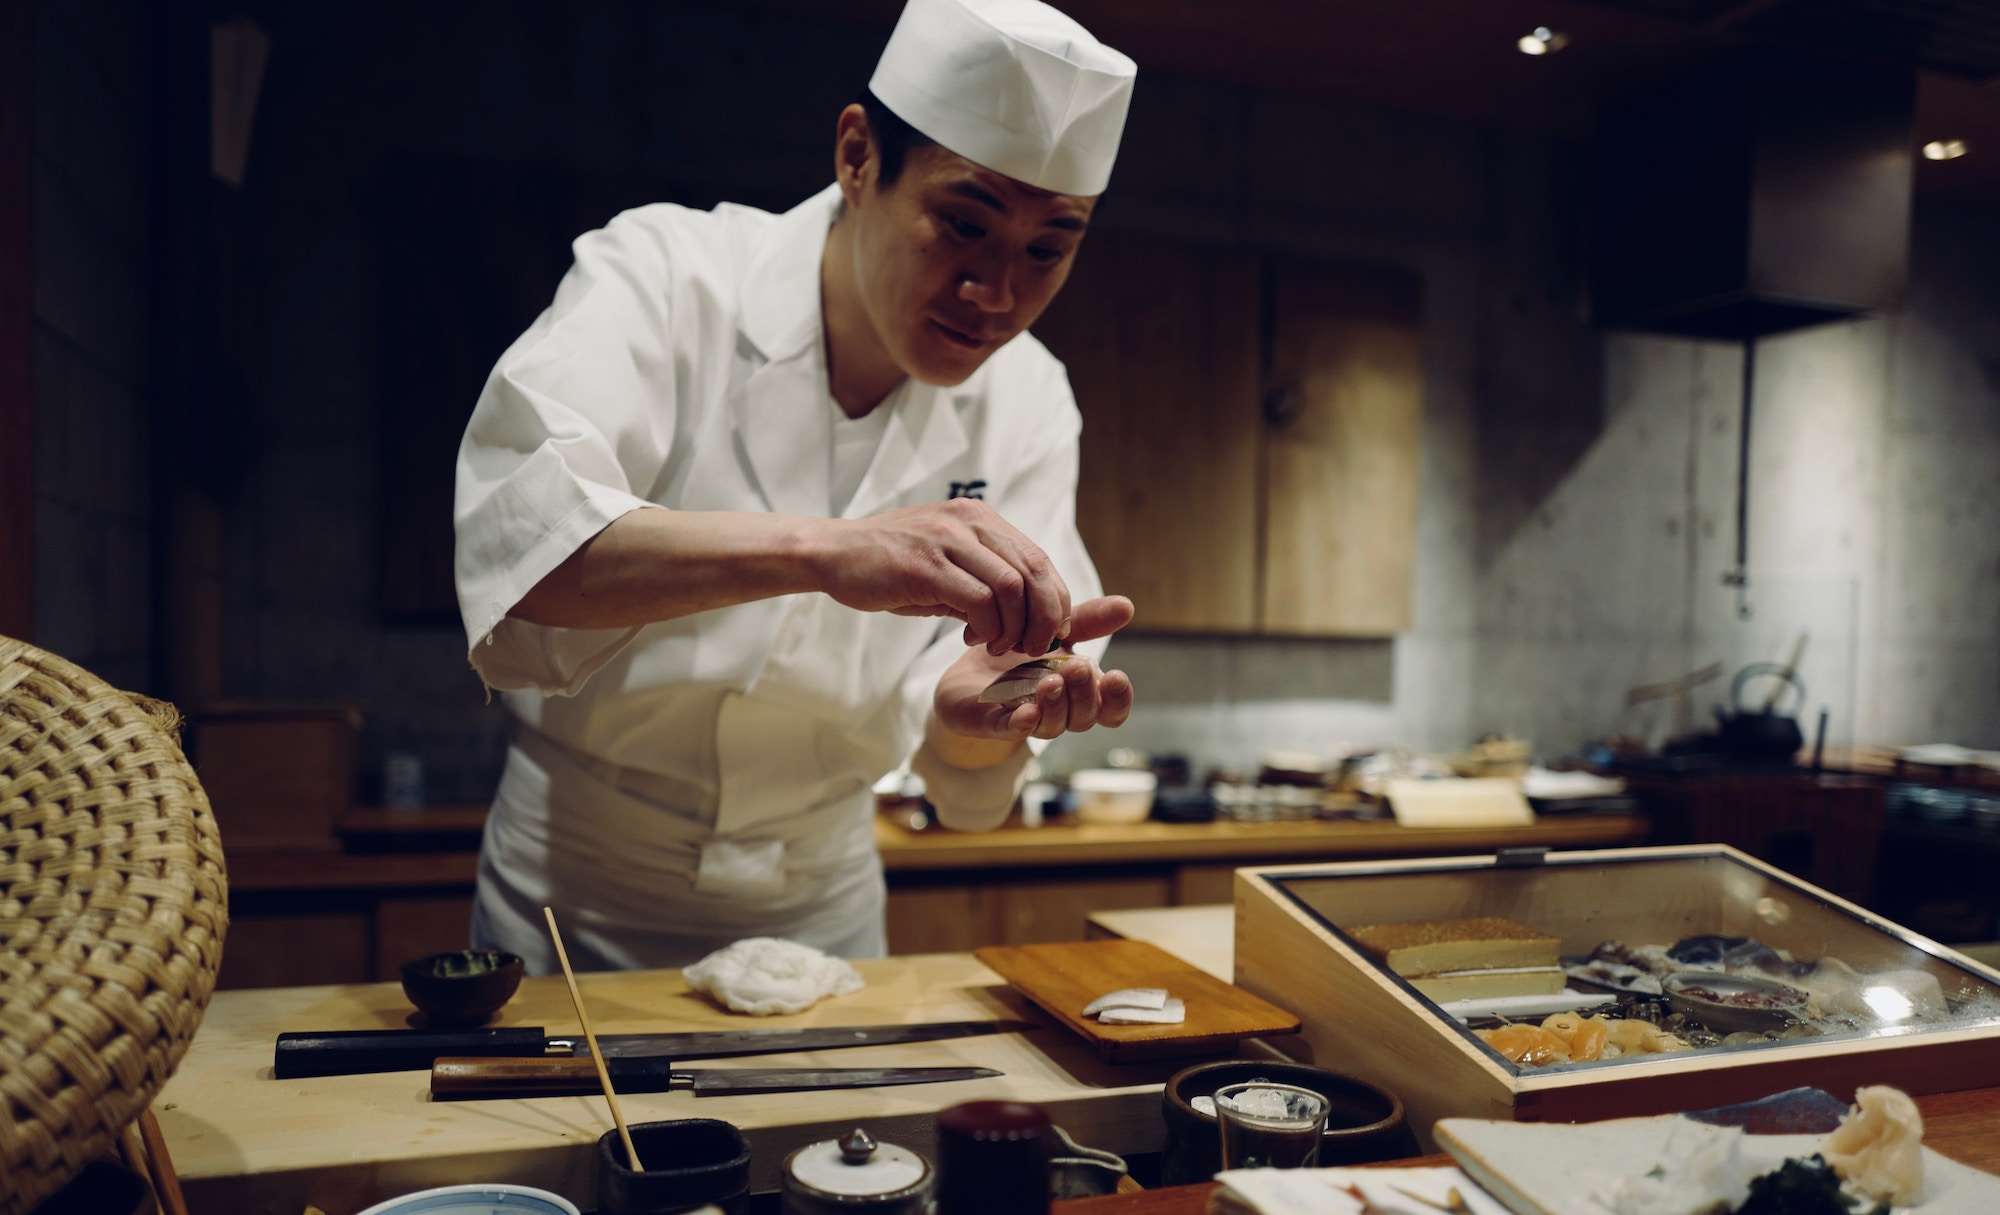 10 Things You Should Never Do When Eating Sushi